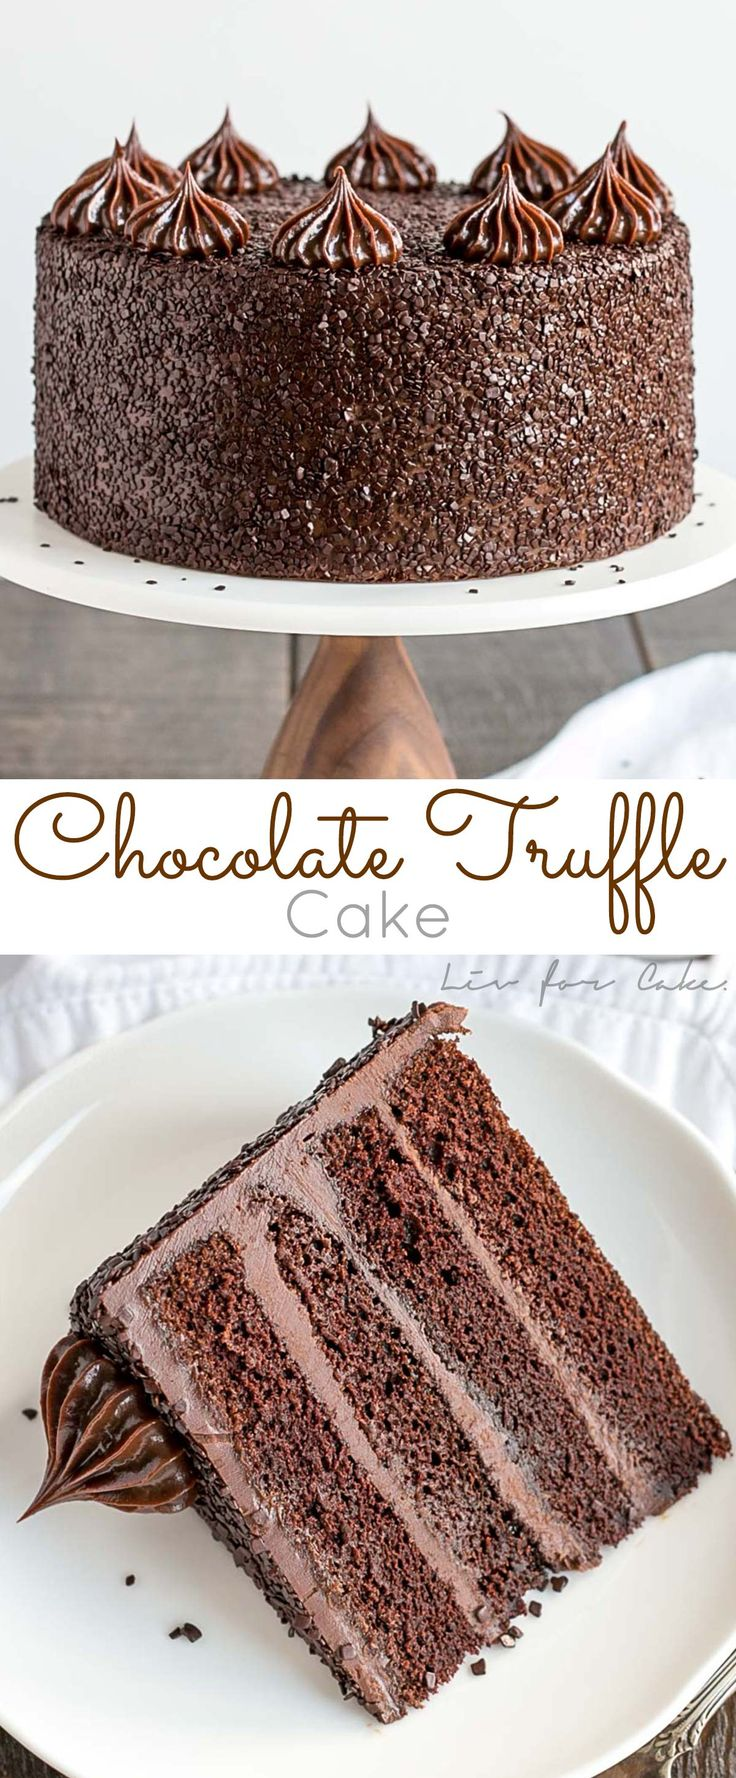 The ultimate chocolate indulgence! This decadent Chocolate Truffle Cake is perfect for the chocolate lover in your life. Rich chocolate cake paired with a silky chocolate ganache frosting.   livforcake.com